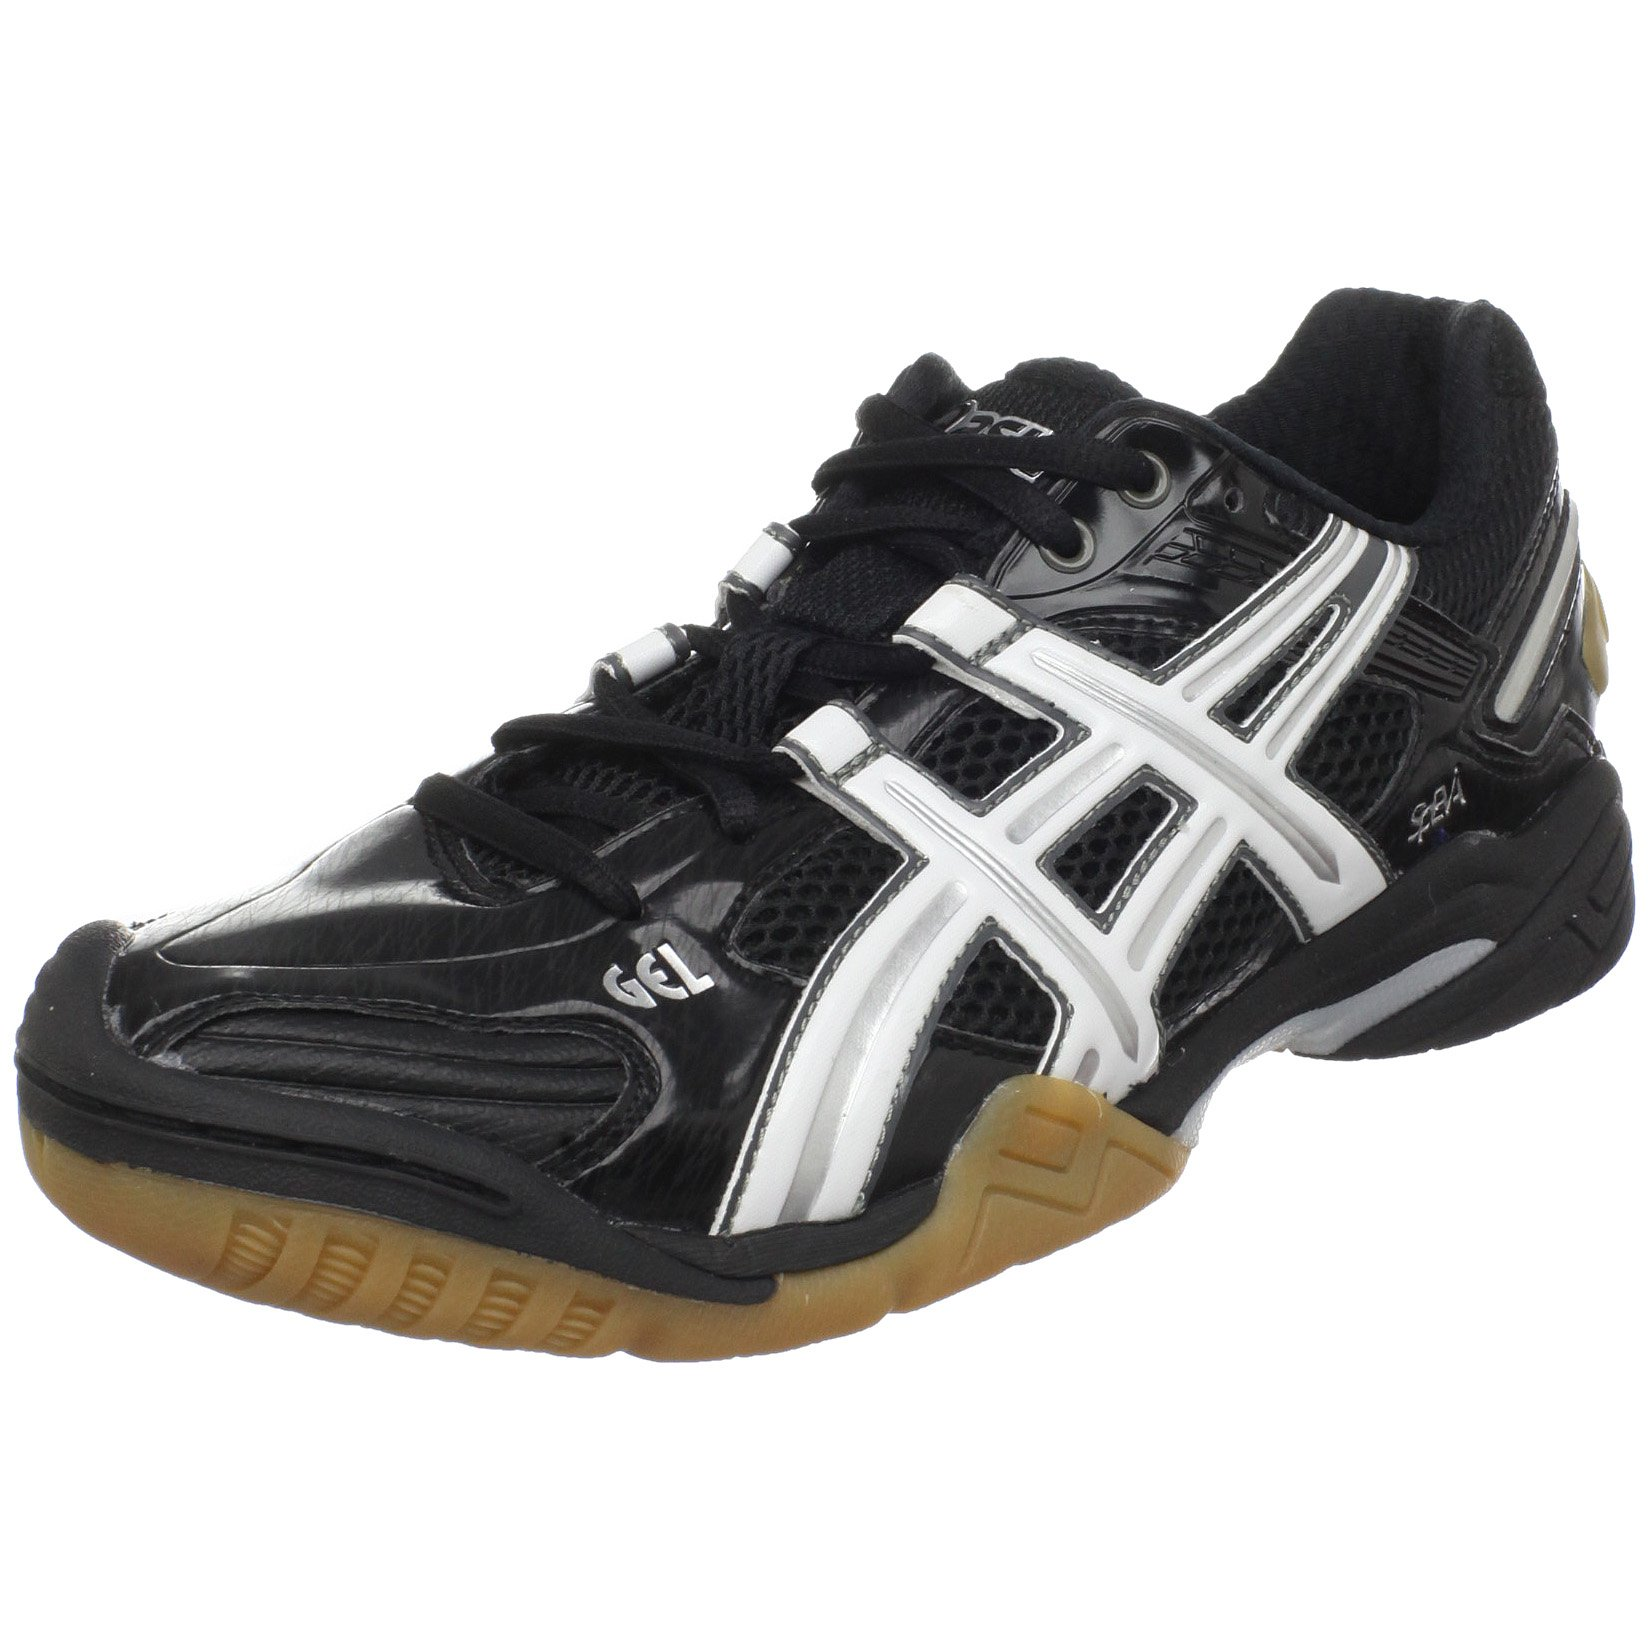 ASICS Women's GEL-Domain 2 Volleyball Shoe,Black/White/Black,11 M